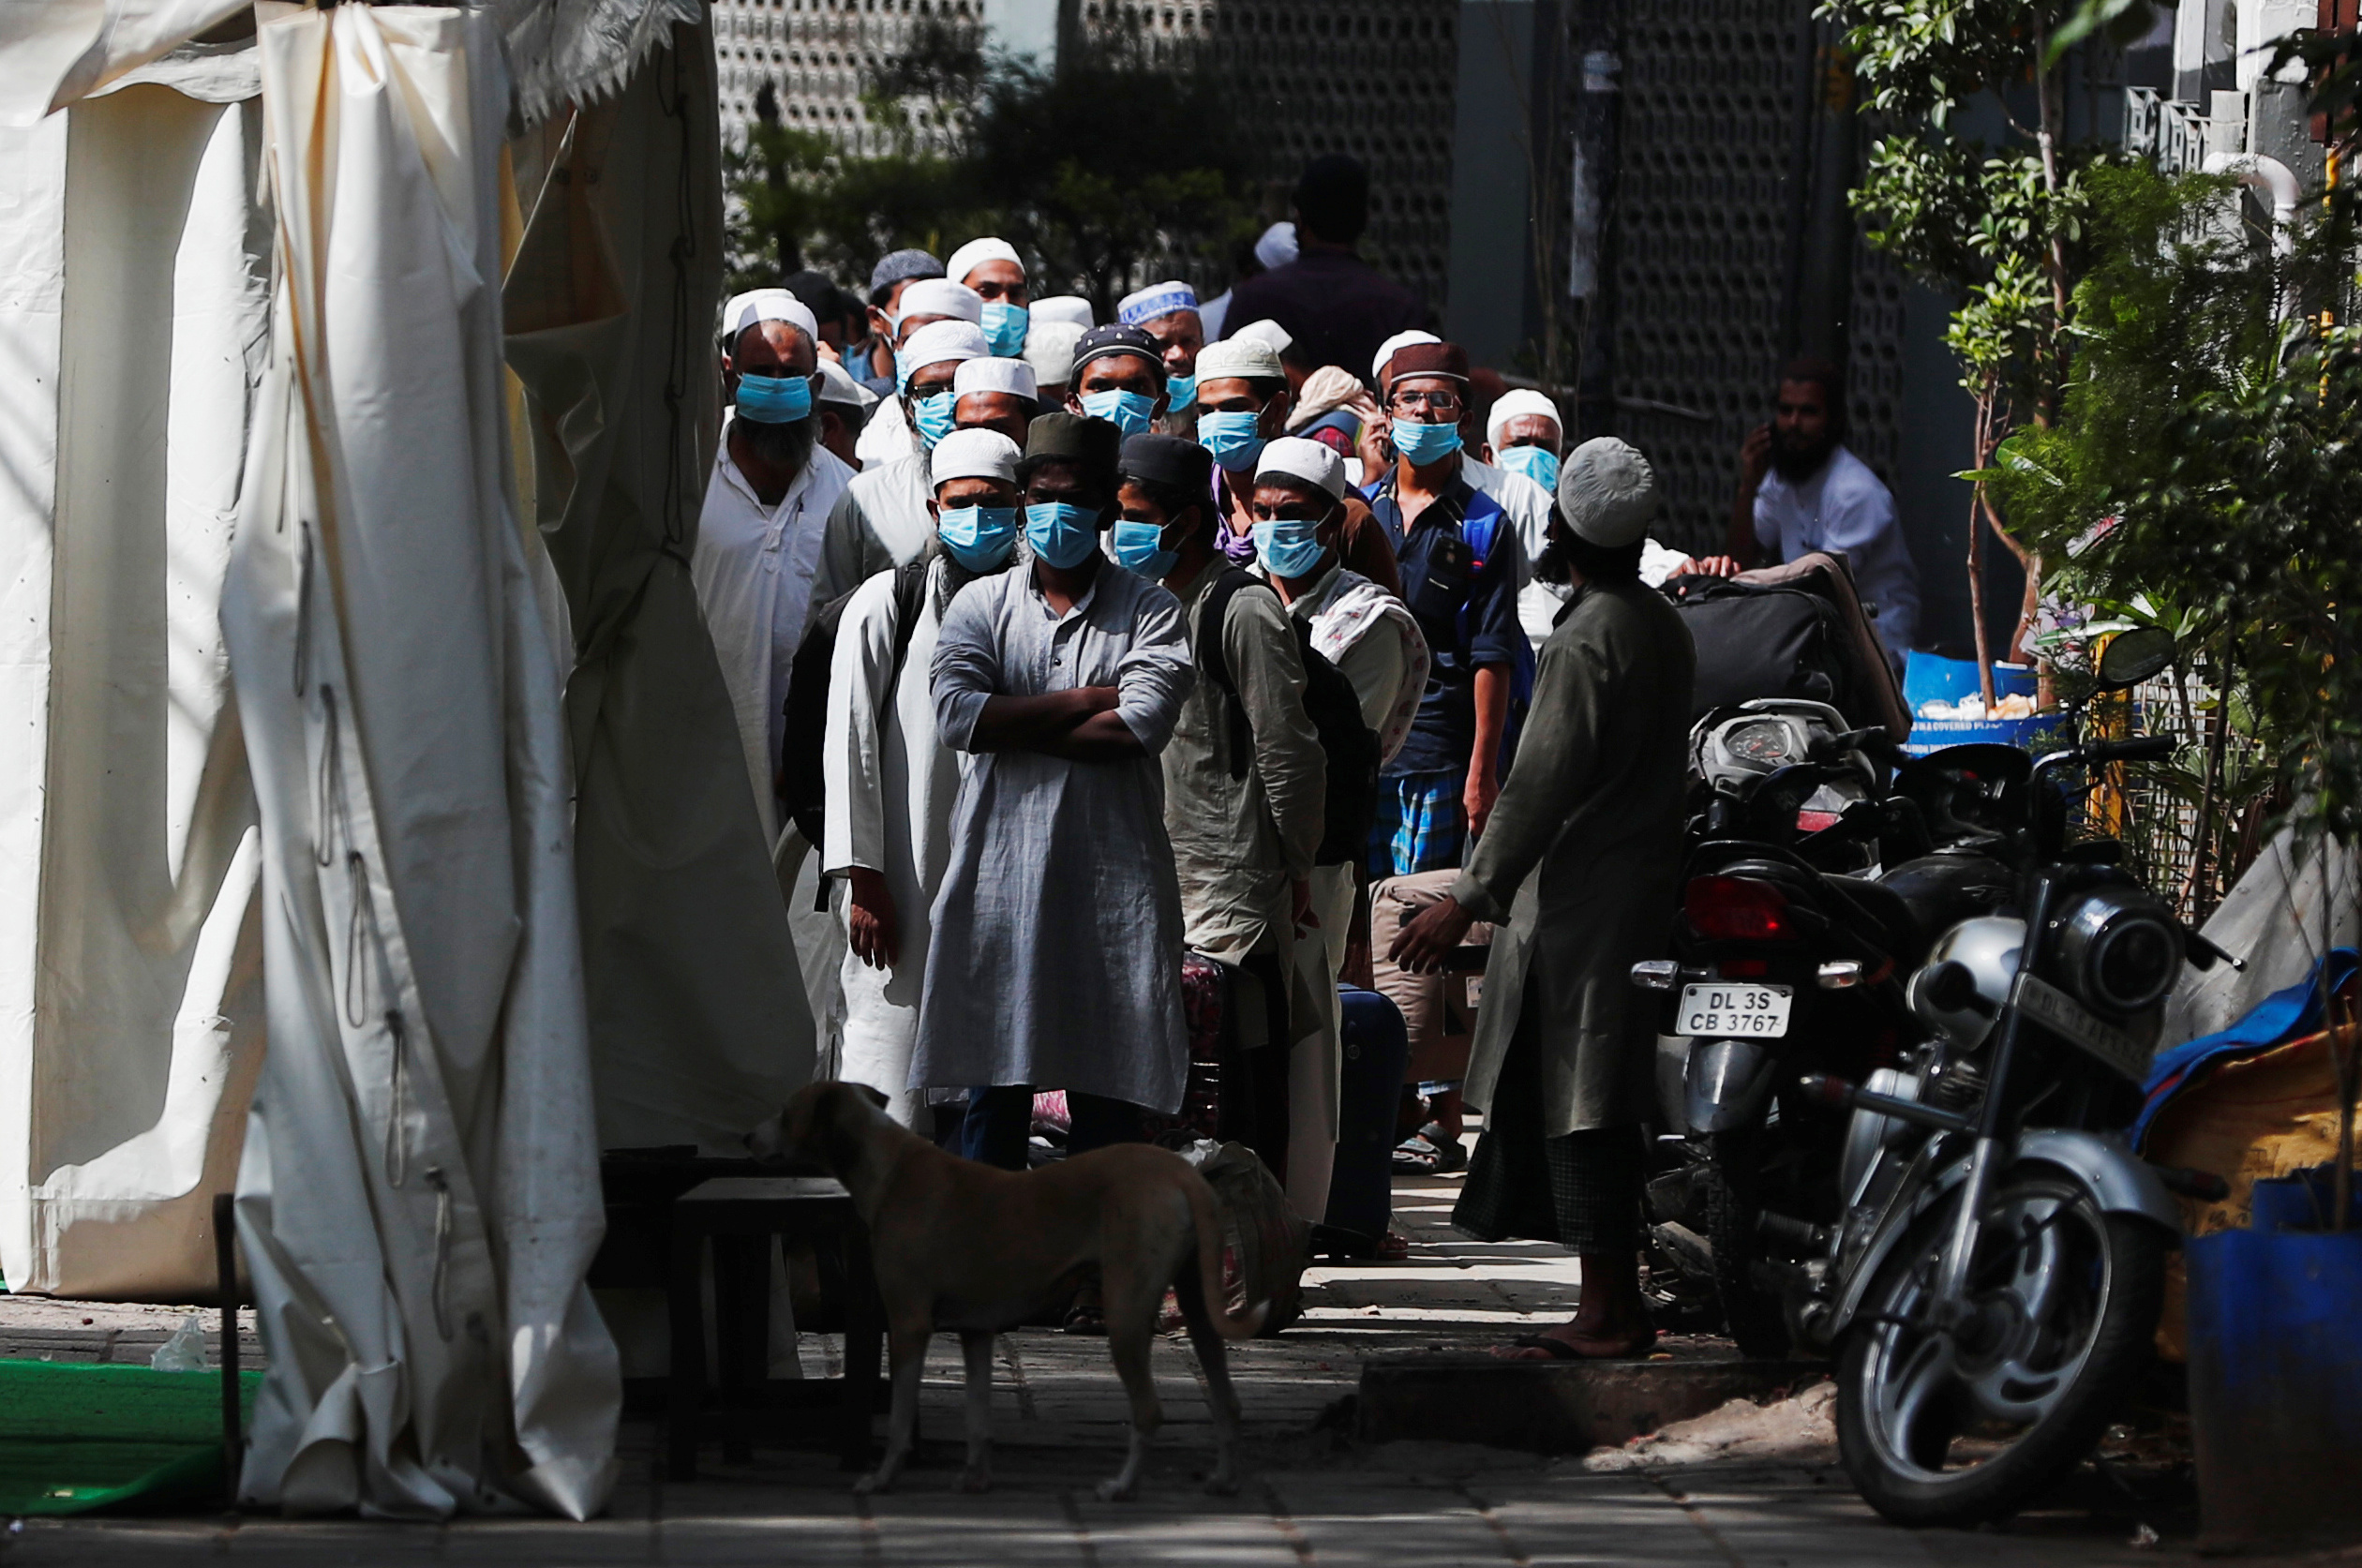 Men wearing protective masks wait for a bus that will take them to a quarantine facility, amid concerns about the spread of coronavirus disease (COVID-19), in Nizamuddin area of New Delhi, India, March 31, 2020. (REUTERS/Adnan Abidi)